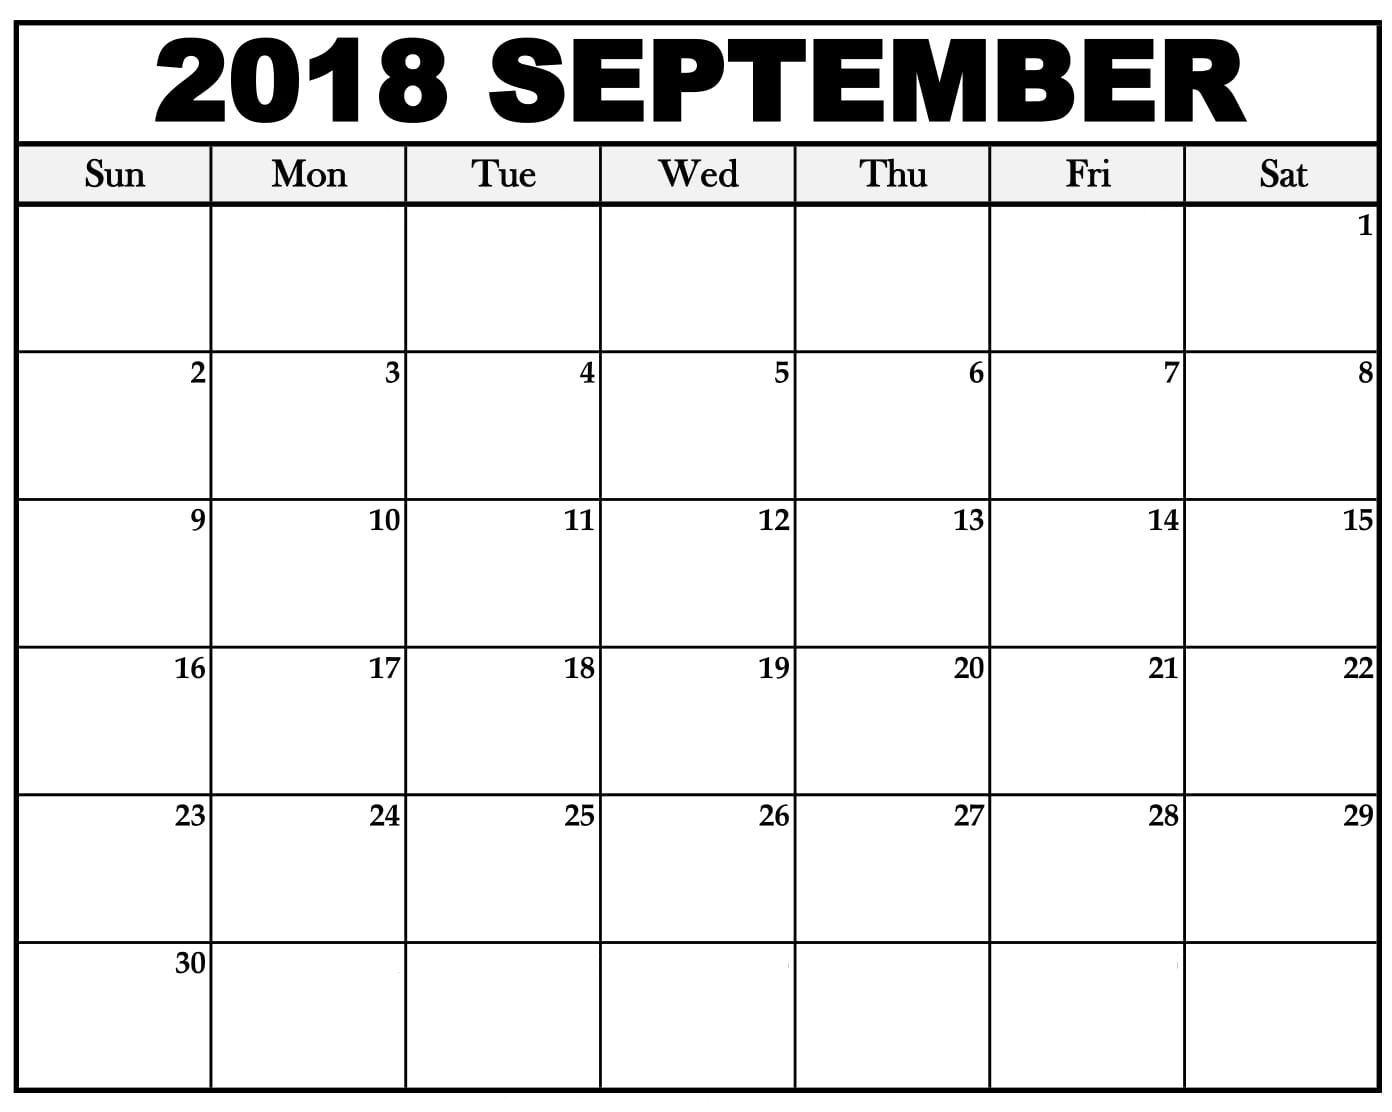 September Calendar Printable Template